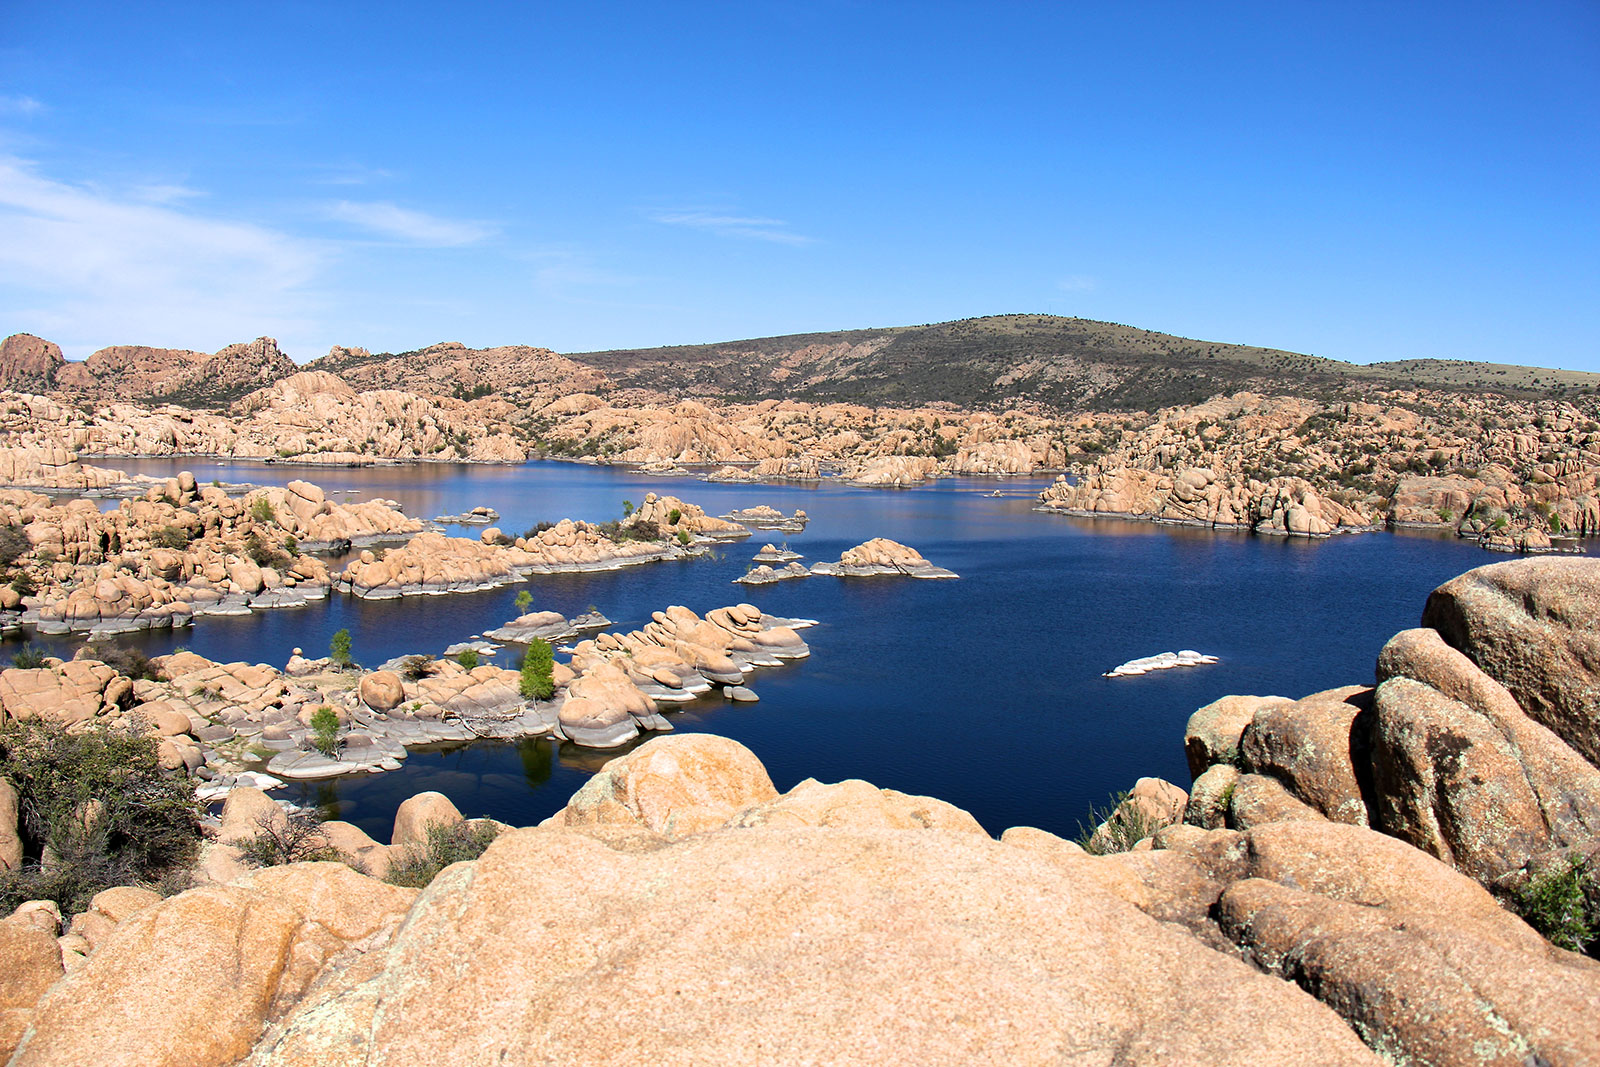 Visit Watson Lake in Prescott, Arizona when you stay at Forest Villas Hotel